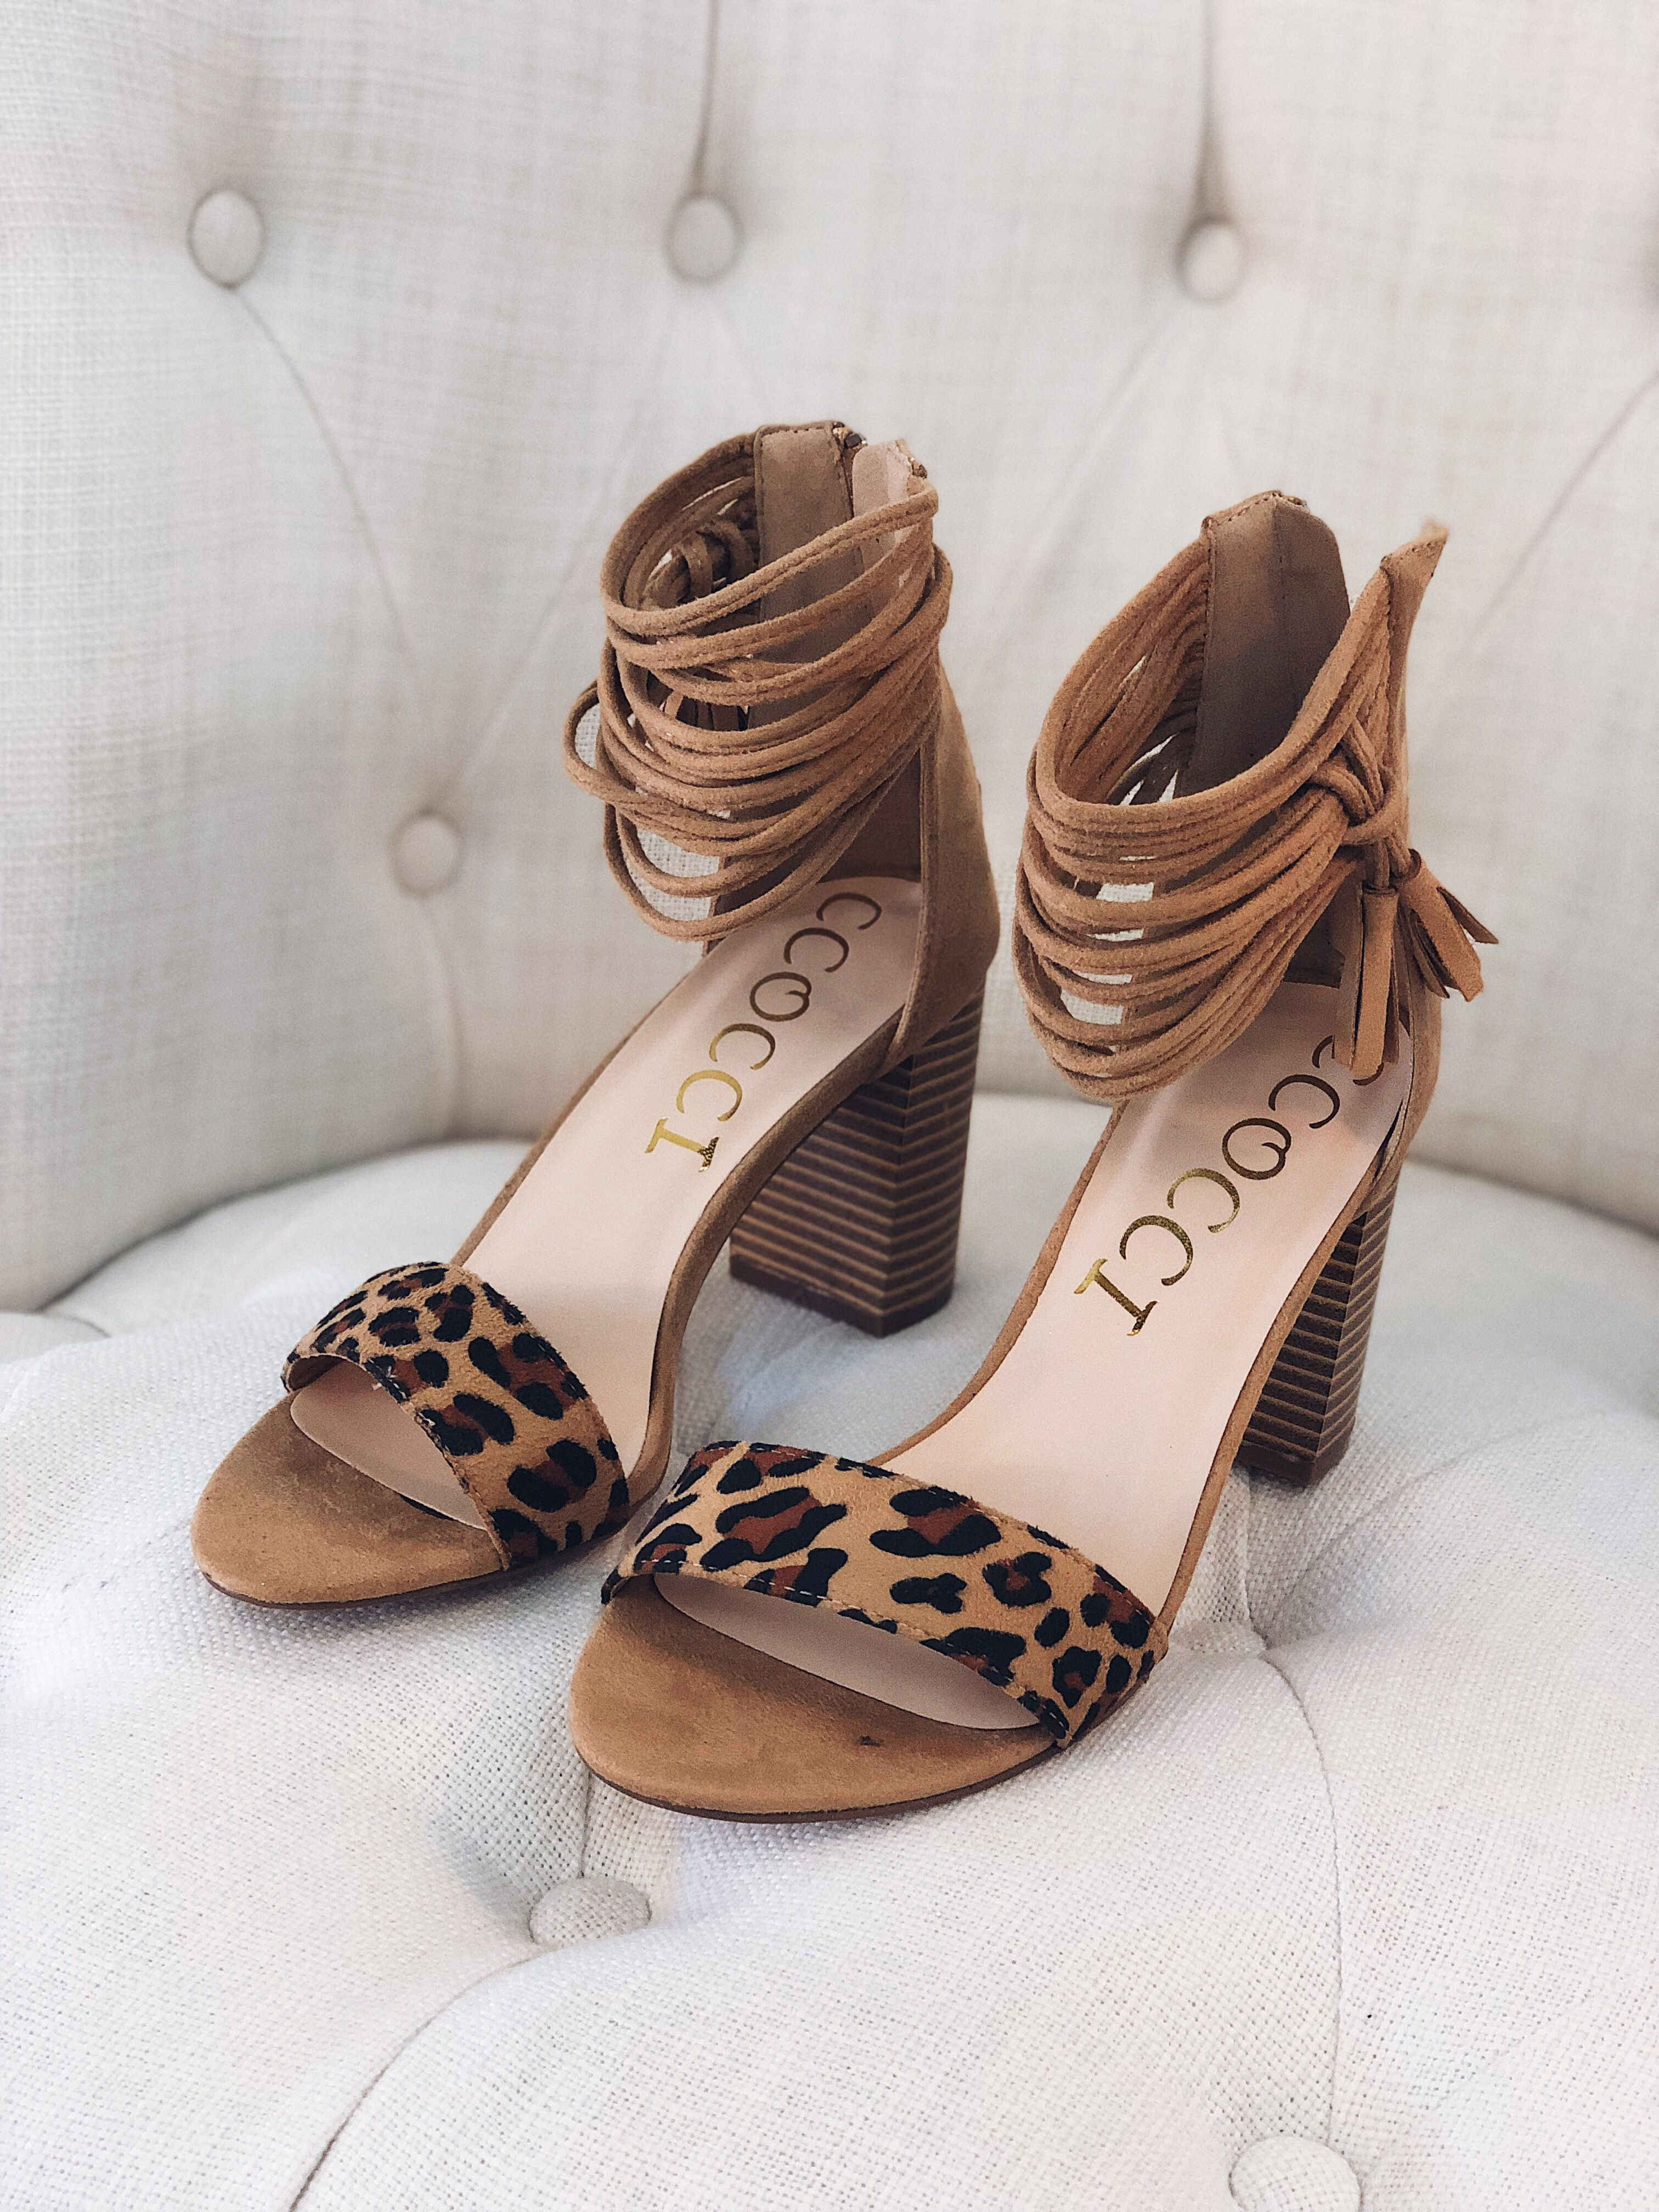 c49a743323 These leopard heels are every girl's dream! Perfect for fall and the block  heel makes them super comfy!